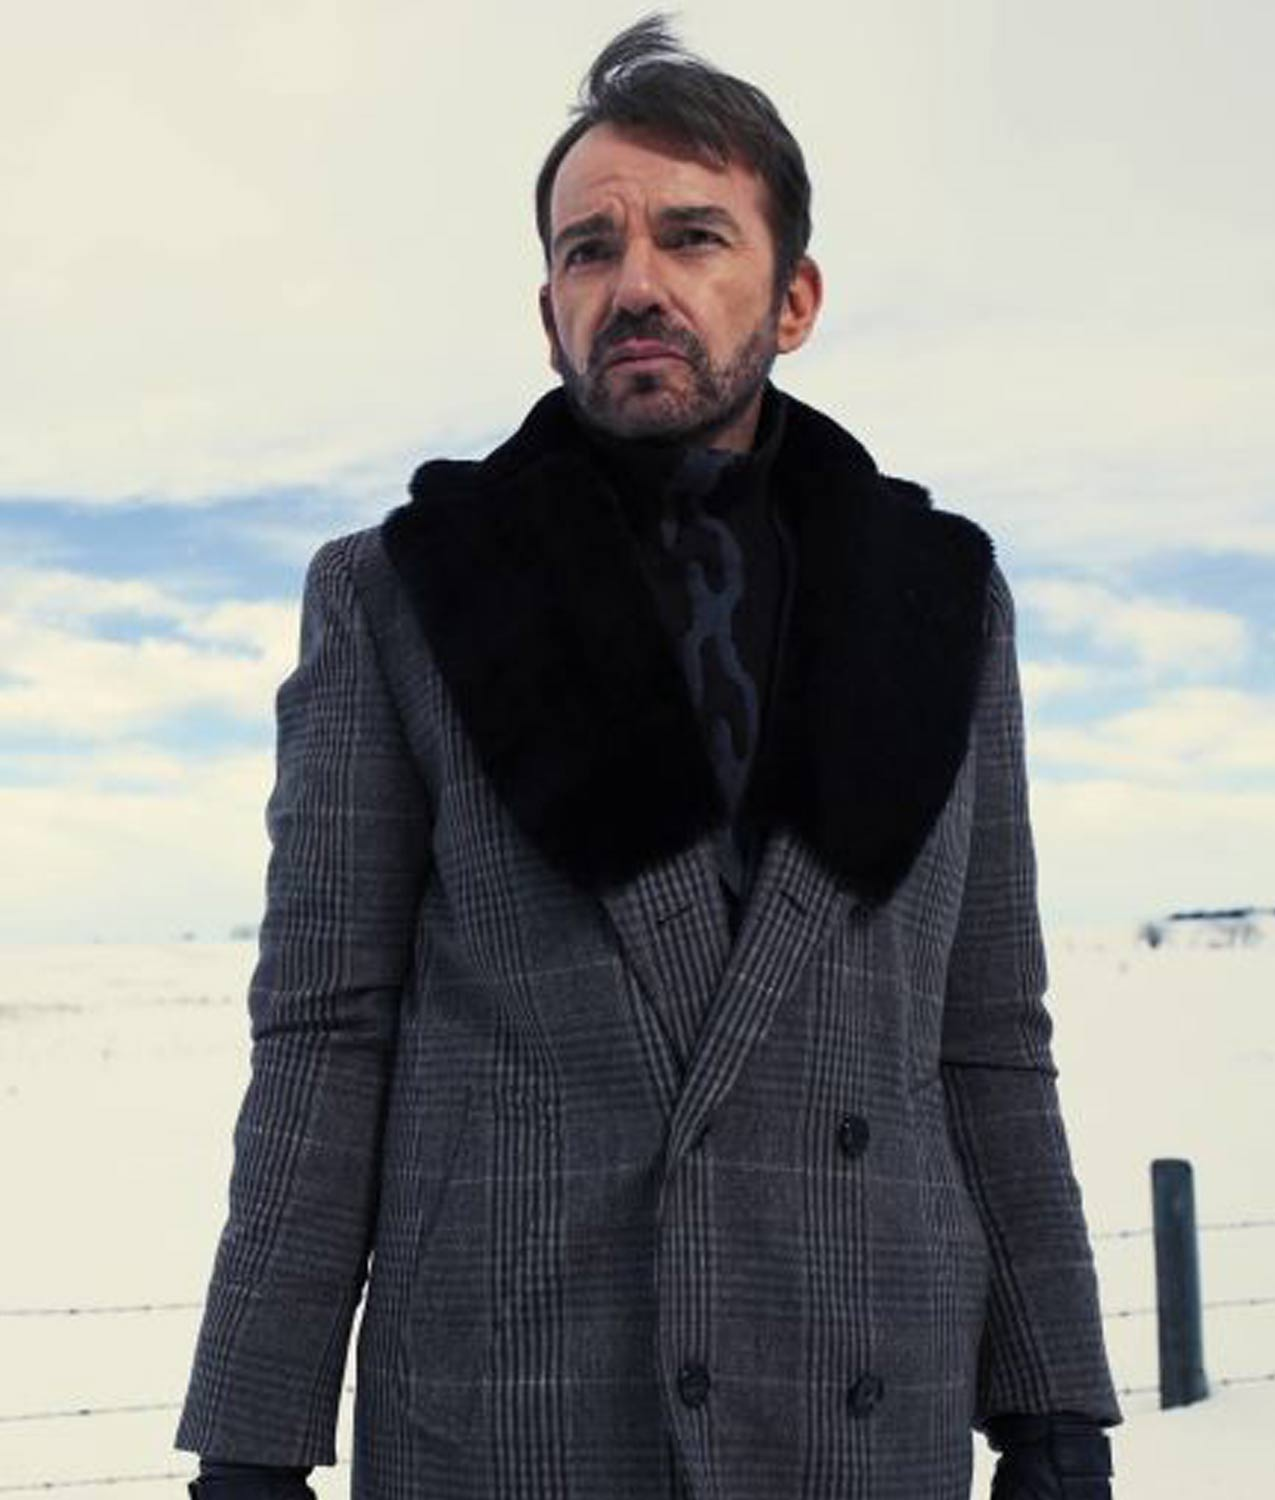 https://i0.wp.com/www.jacketscreator.com/wp-content/uploads/2018/06/fargo-lorne-malvo-coat.jpg?fit=1275%2C1500&ssl=1